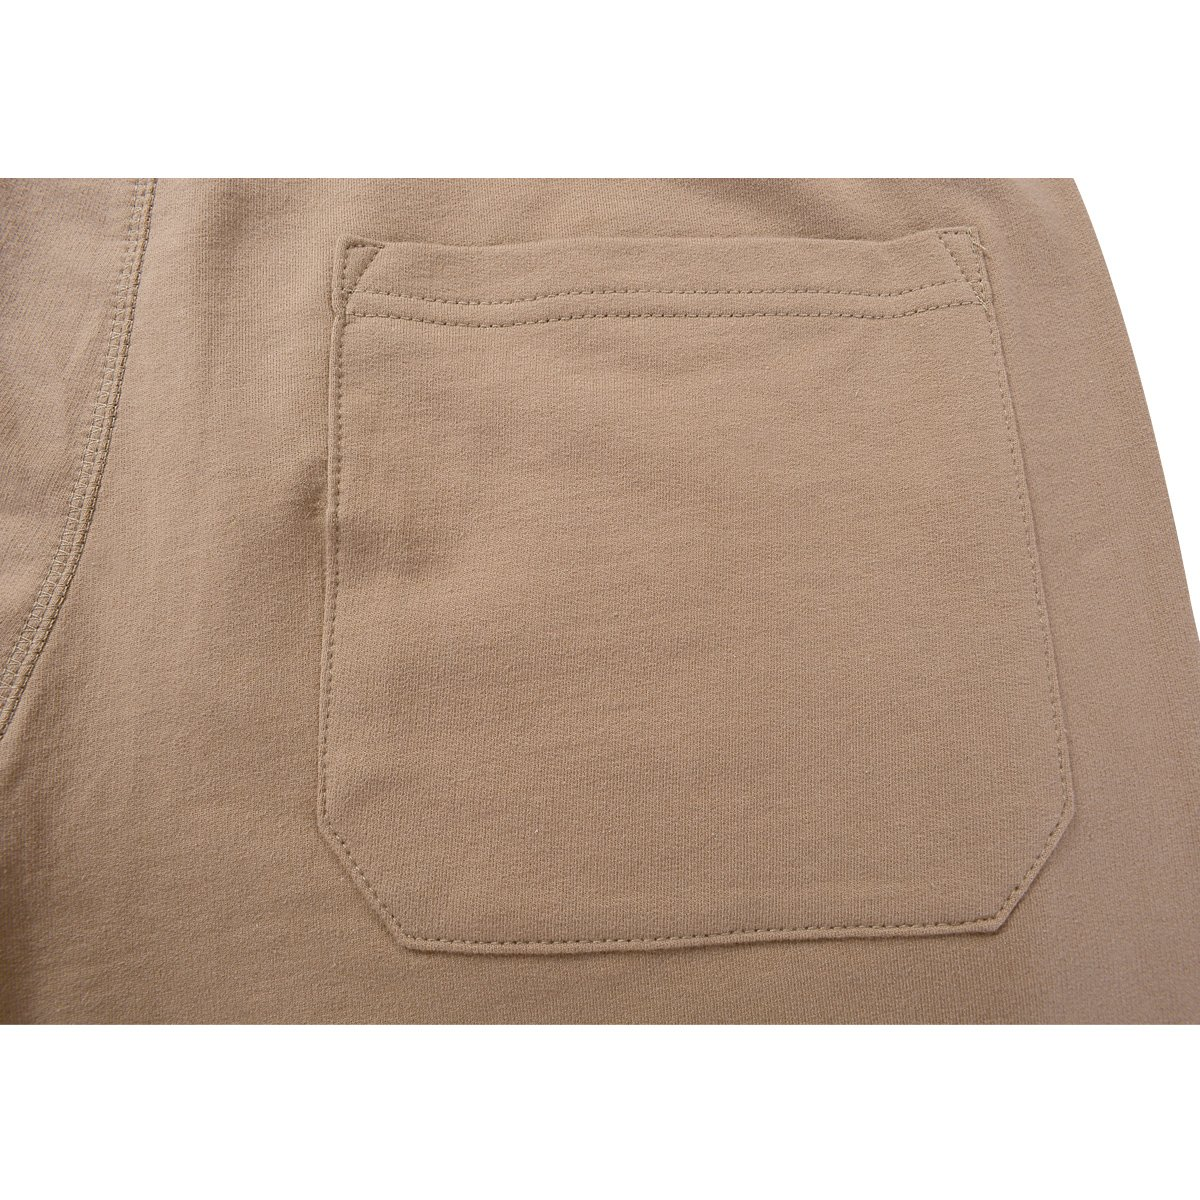 Amy Coulee Men's Cotton Casual Short with Pockets (S, Brown) by Amy Coulee (Image #6)